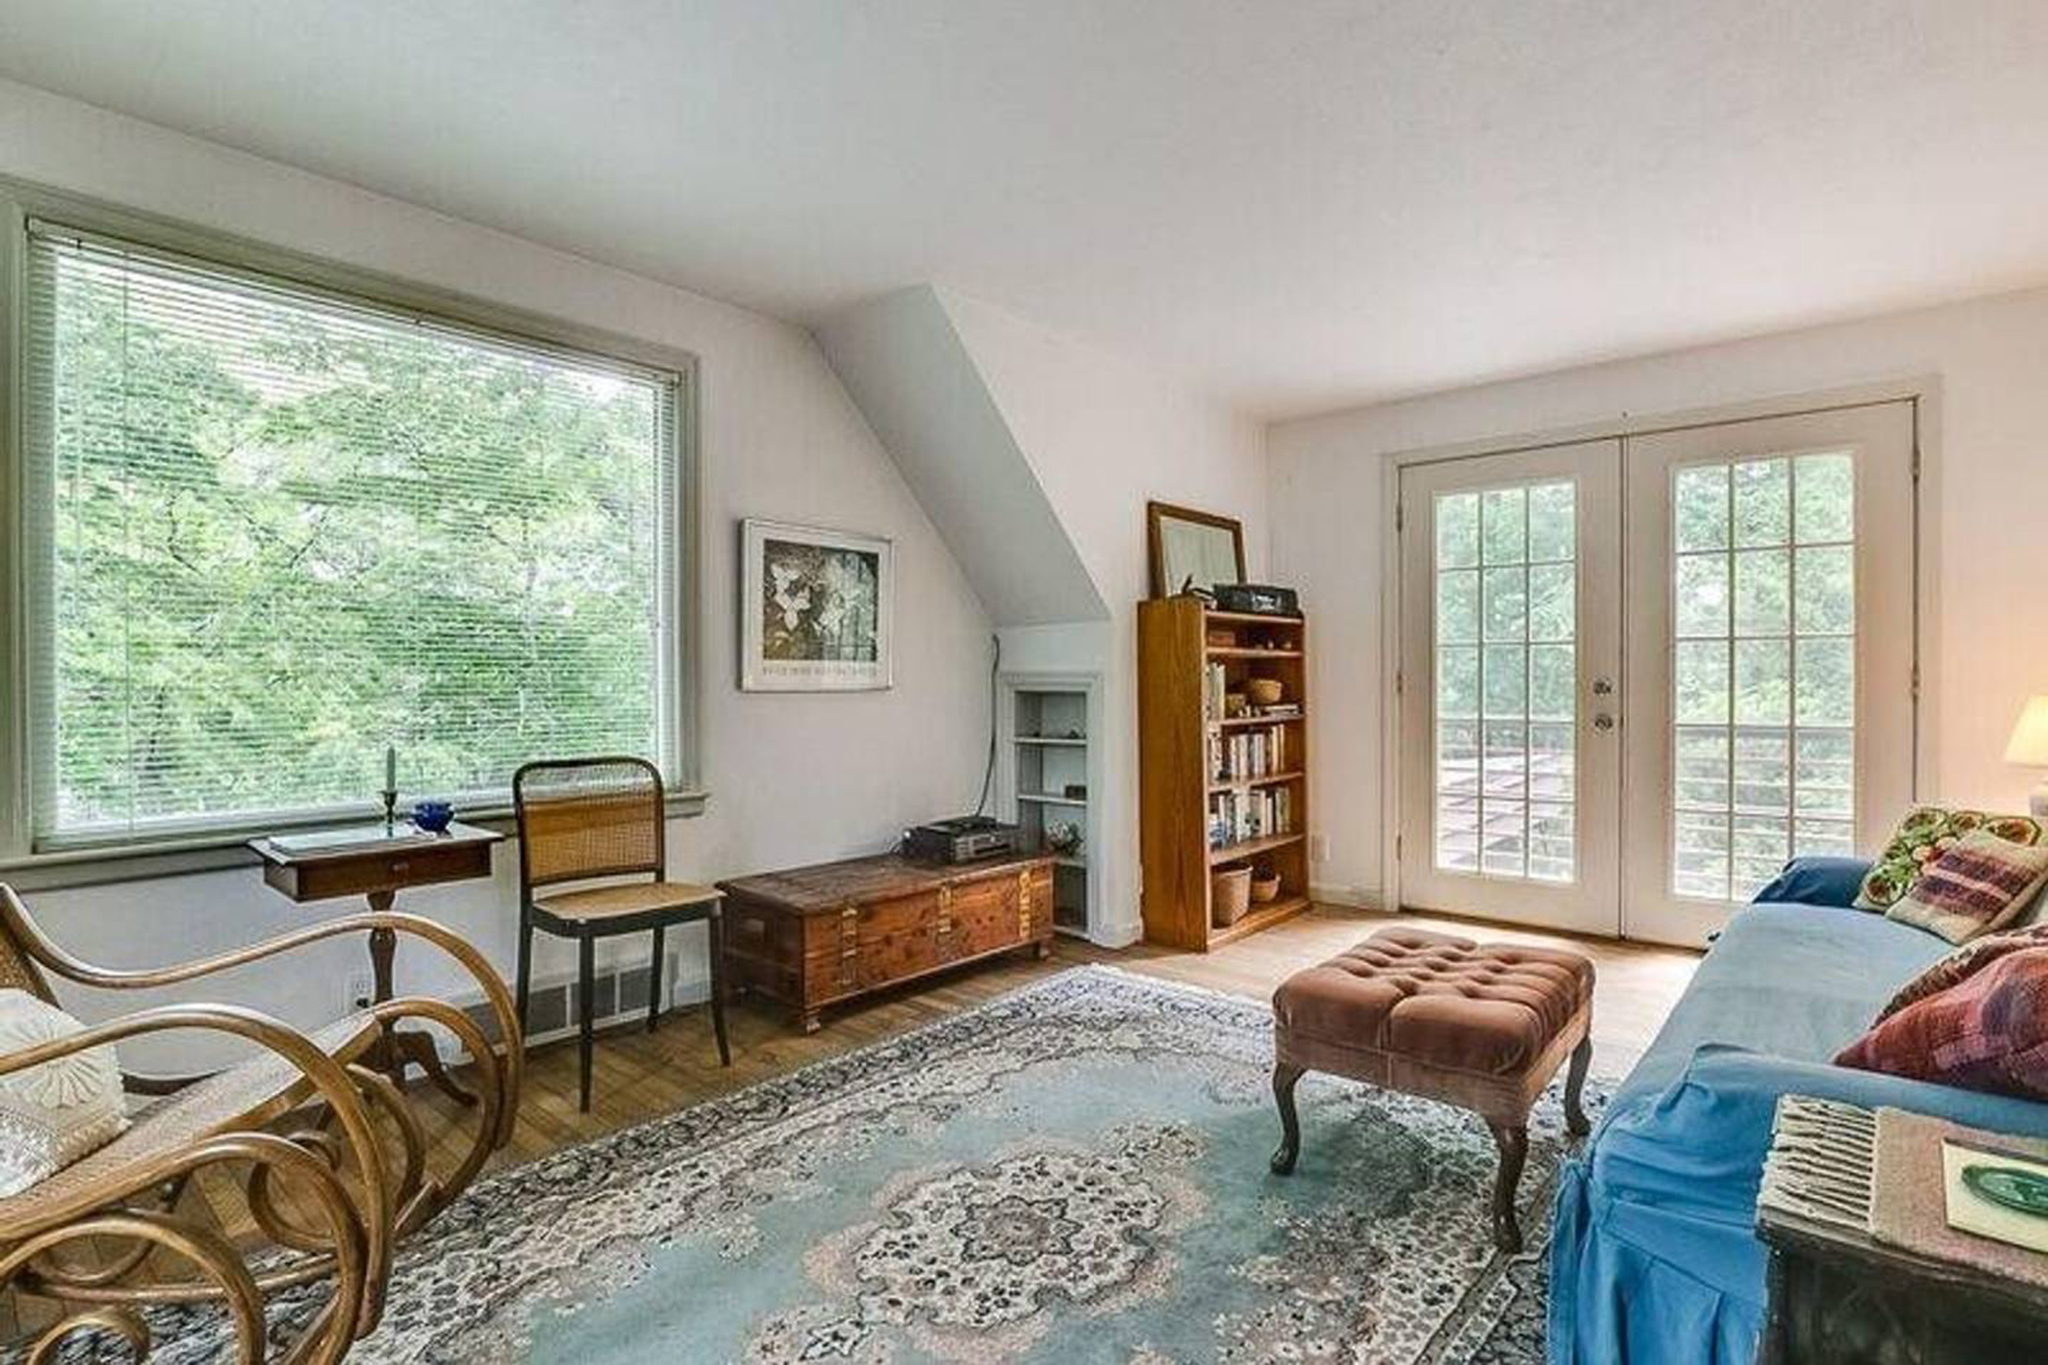 Sunny Guesthouse With Lake Views in Kenosha, WI